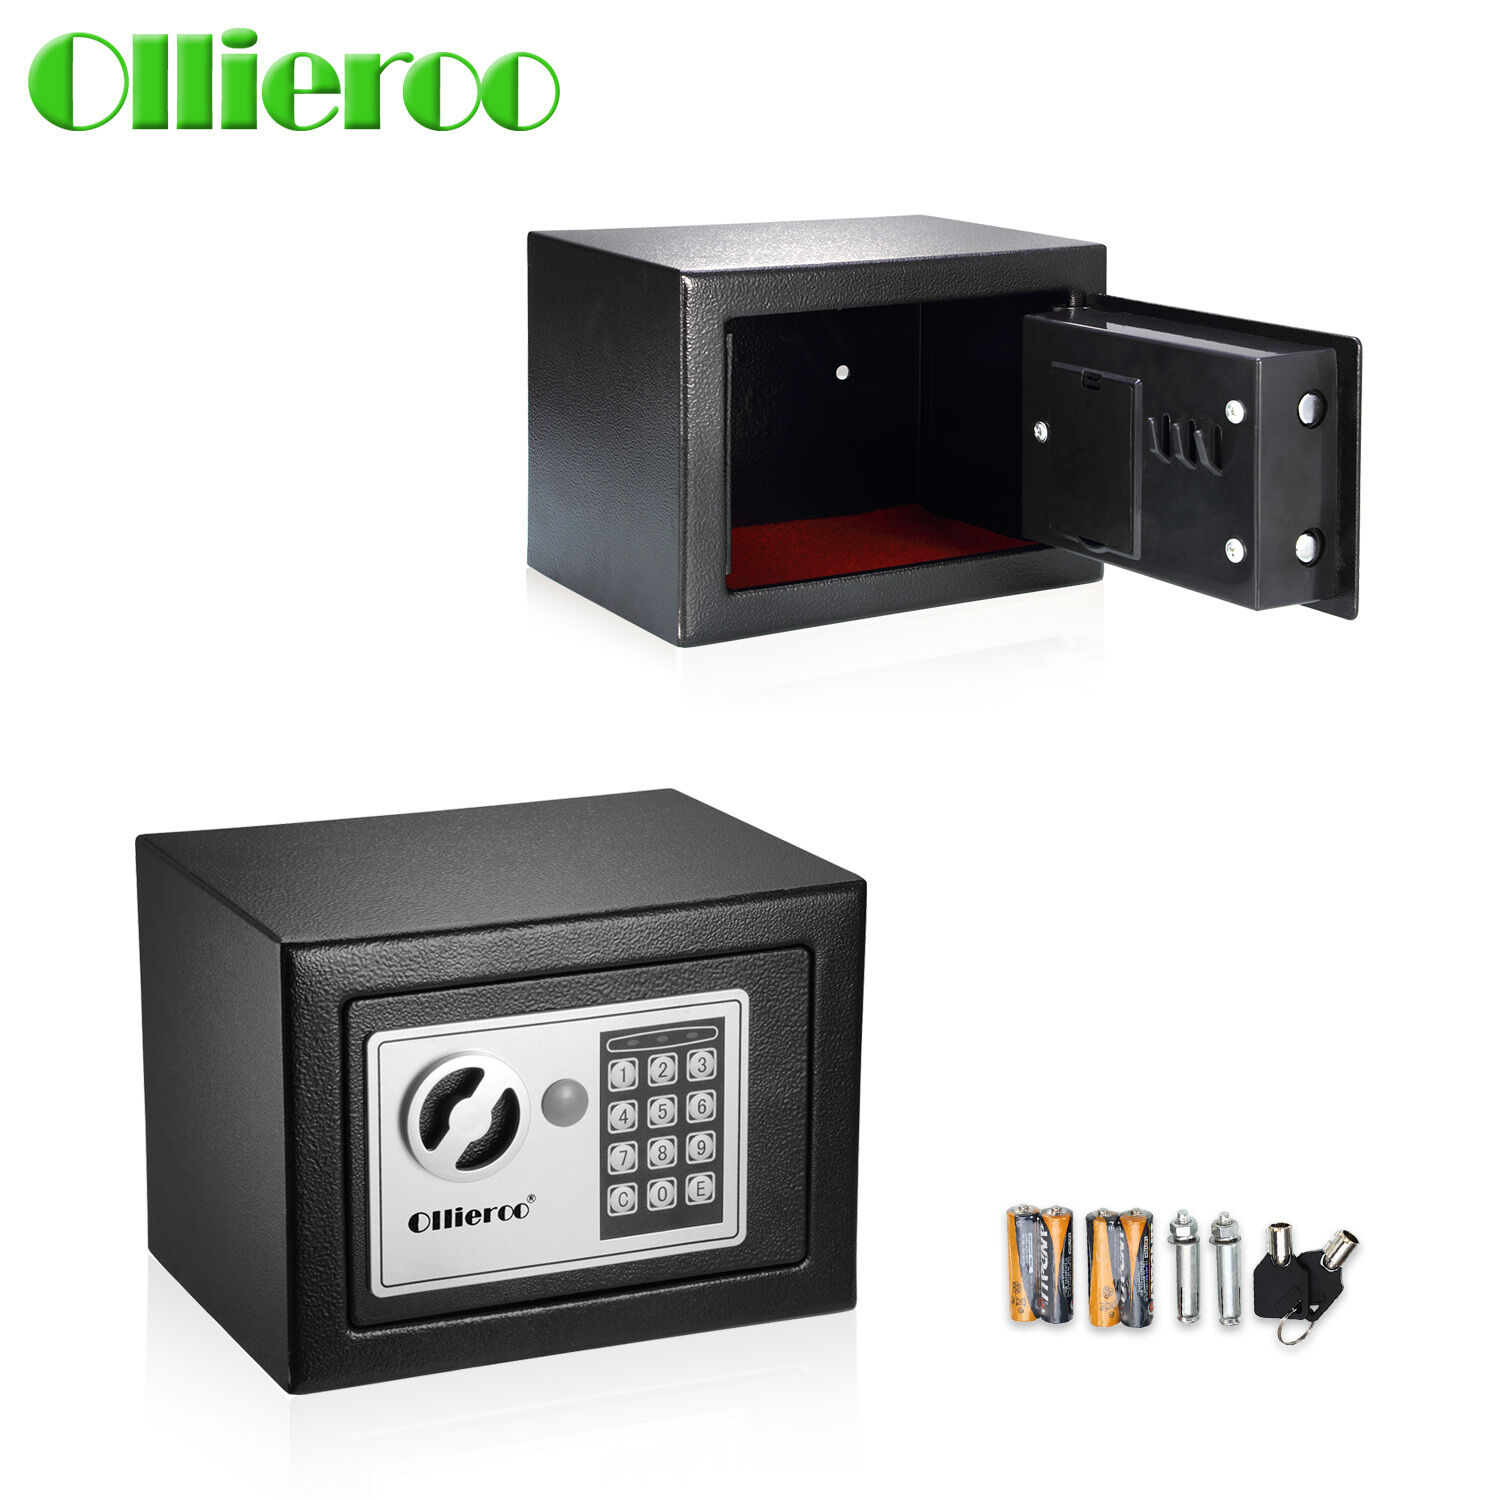 Ollieroo small digital electronic safe box keypad lock for Small safe box for home